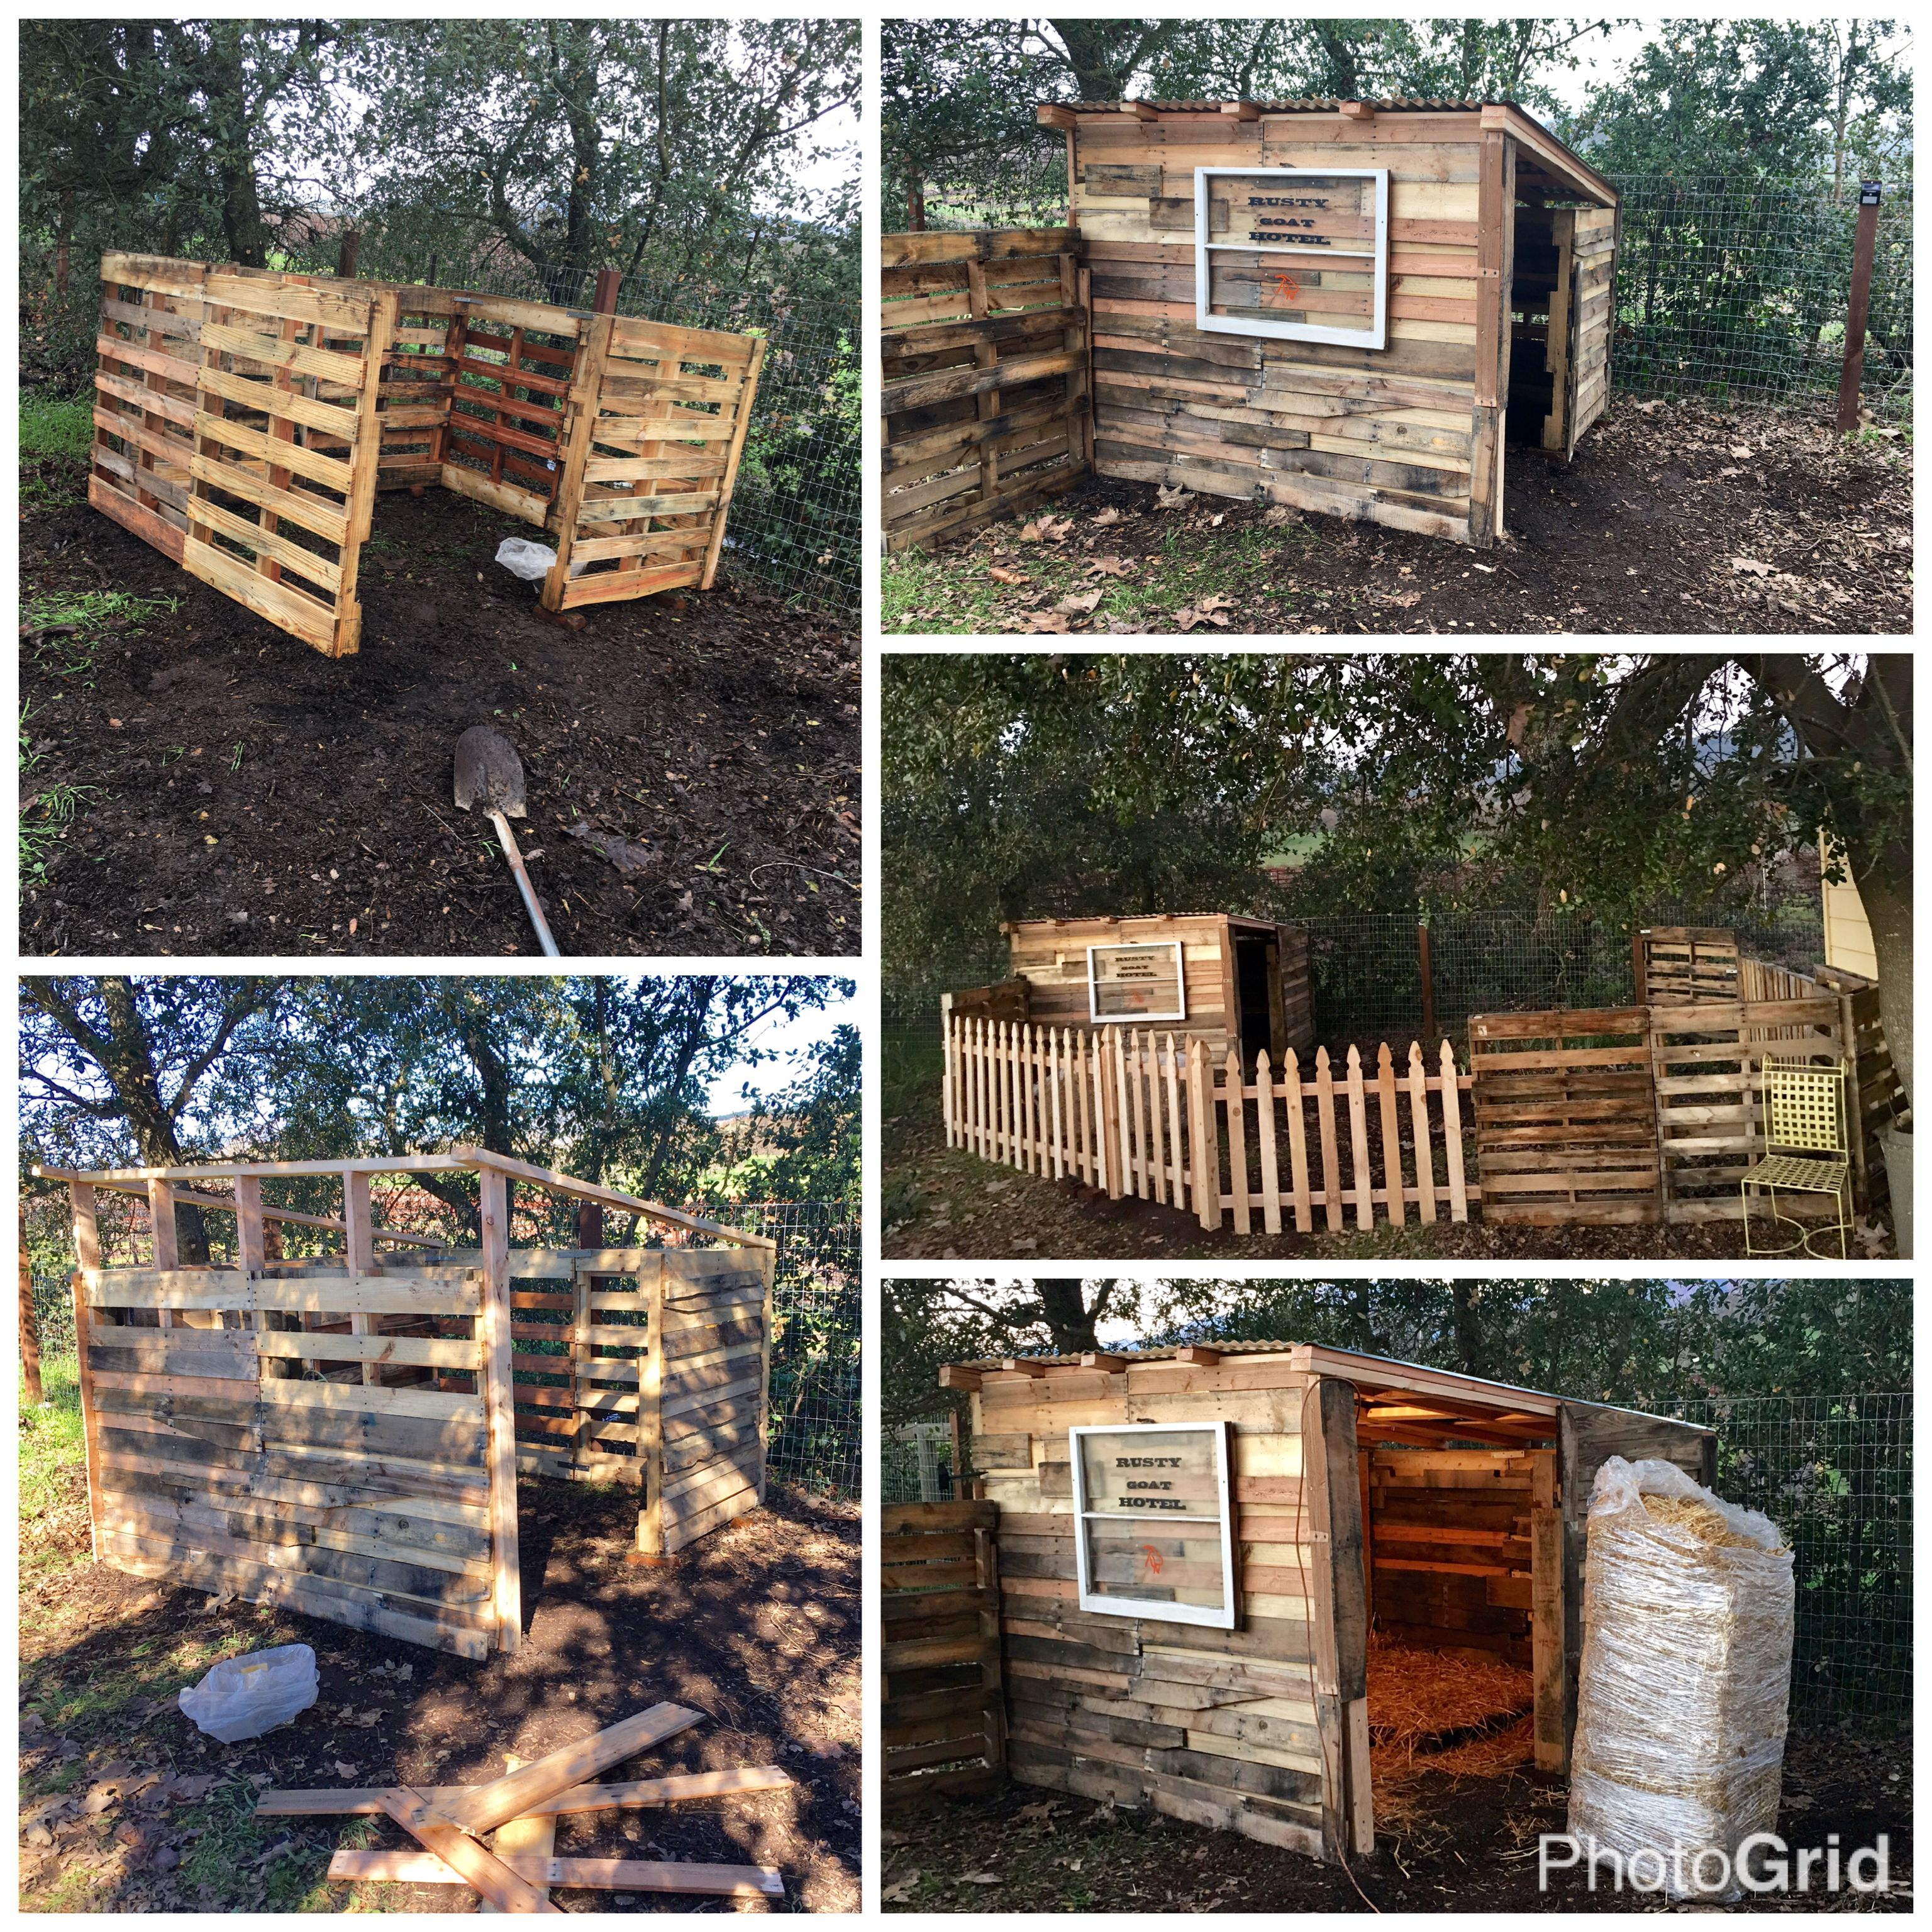 House Made From Pallets Goat House Made From Pallets Rusty Goat Hotel Made Our Goat